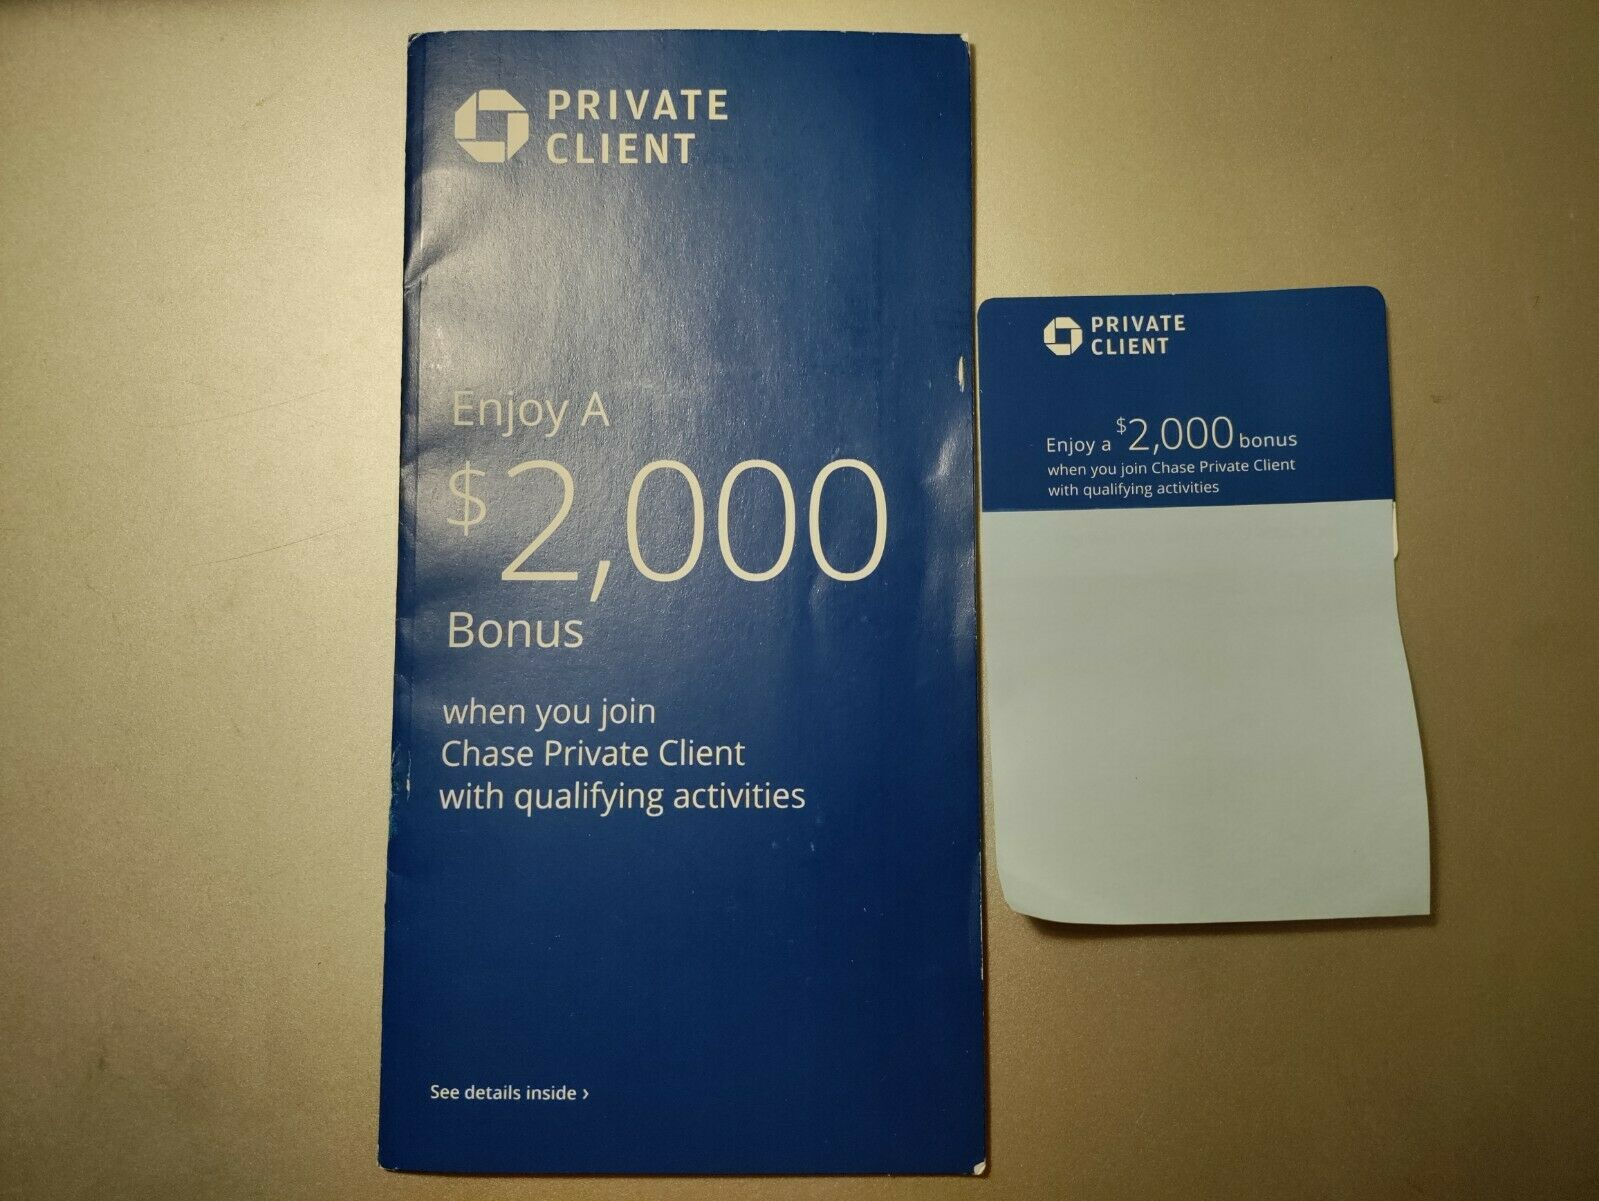 Chase Private Client Bank Coupon 2000 Bonus W/ Qualifying Activities EXP 10/18 - $50.00